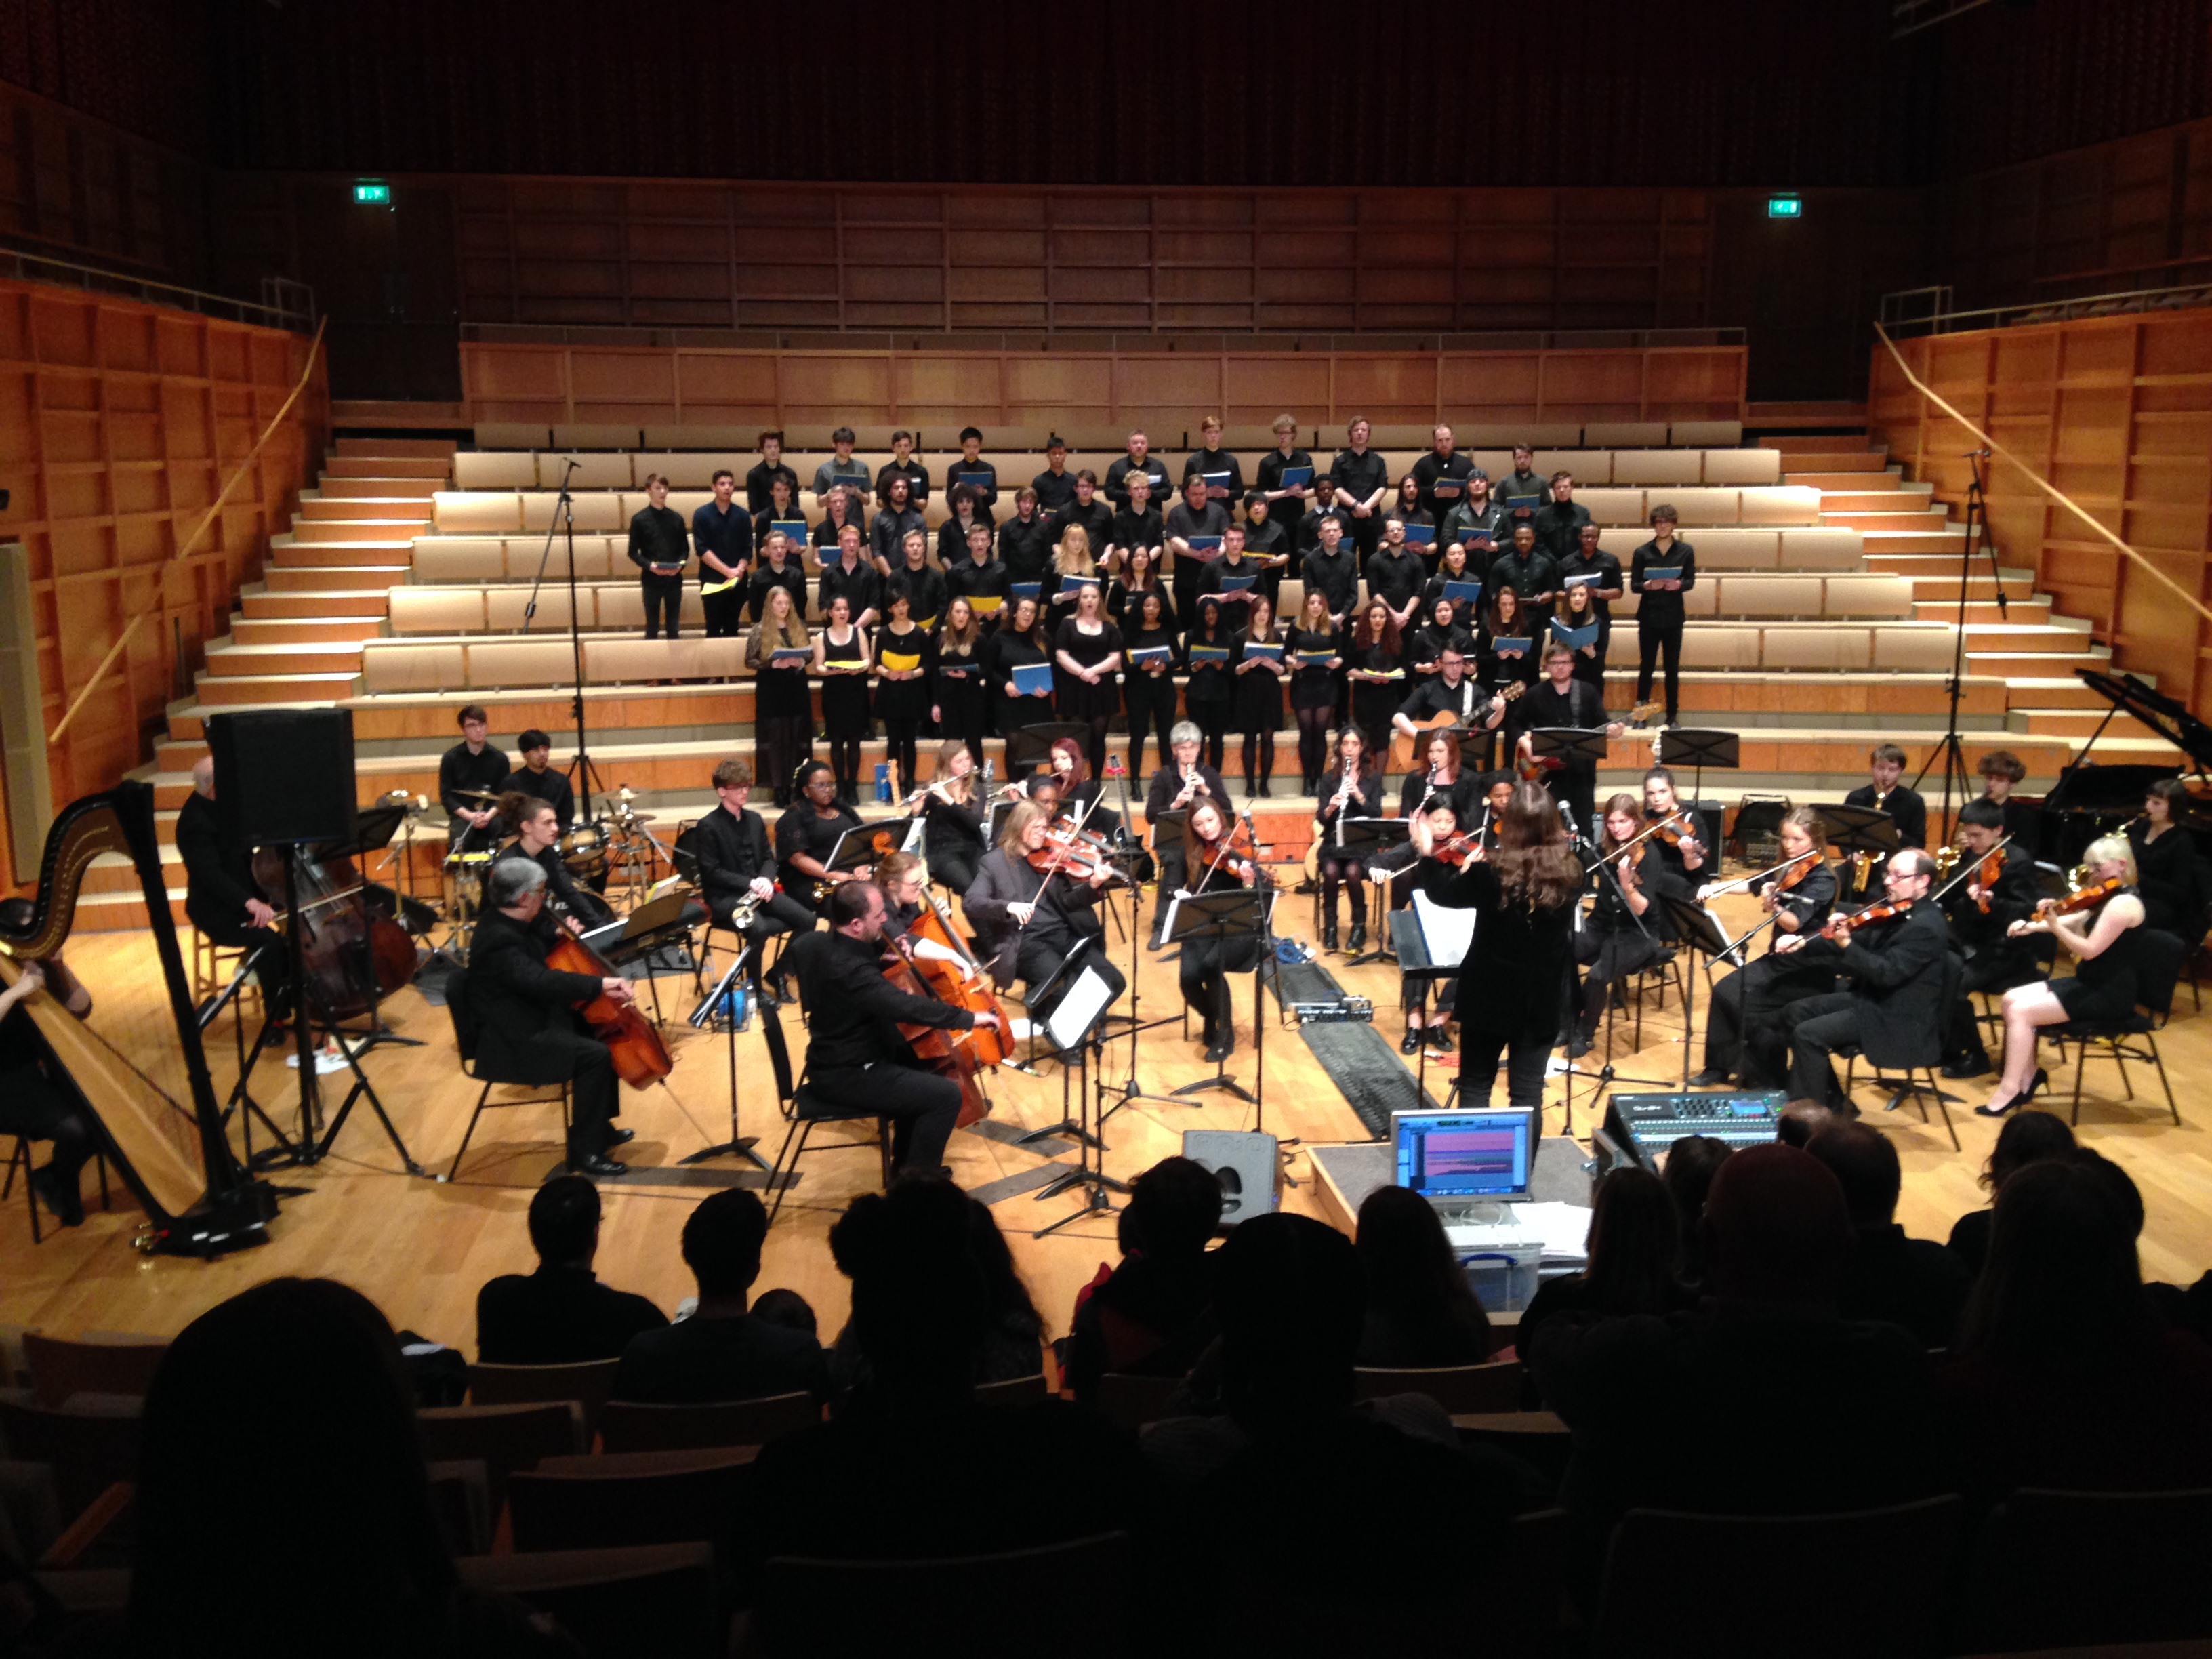 On Wednesday 14 December, 2016 at 7.30pm the University of Kent Choir and Orchestra (Medway) will be performing Vaughan Williams' Fantasia on Christmas ...